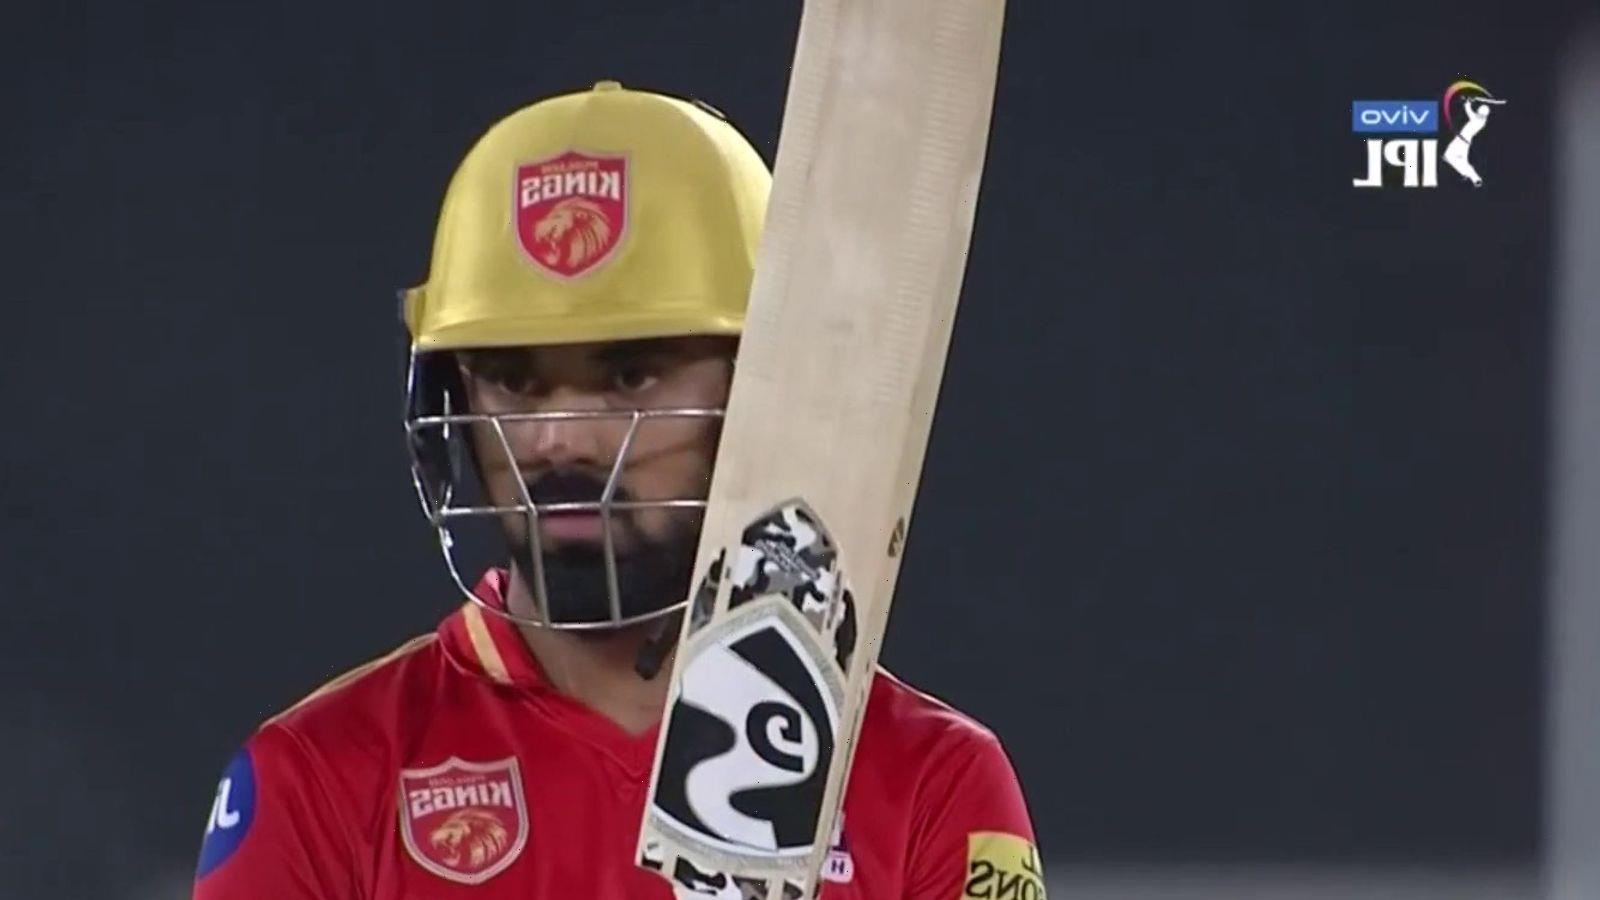 IPL: Punjab Kings thrash RCB as KL Rahul scores 91 not out and Harpreet Brar fires with bat and ball